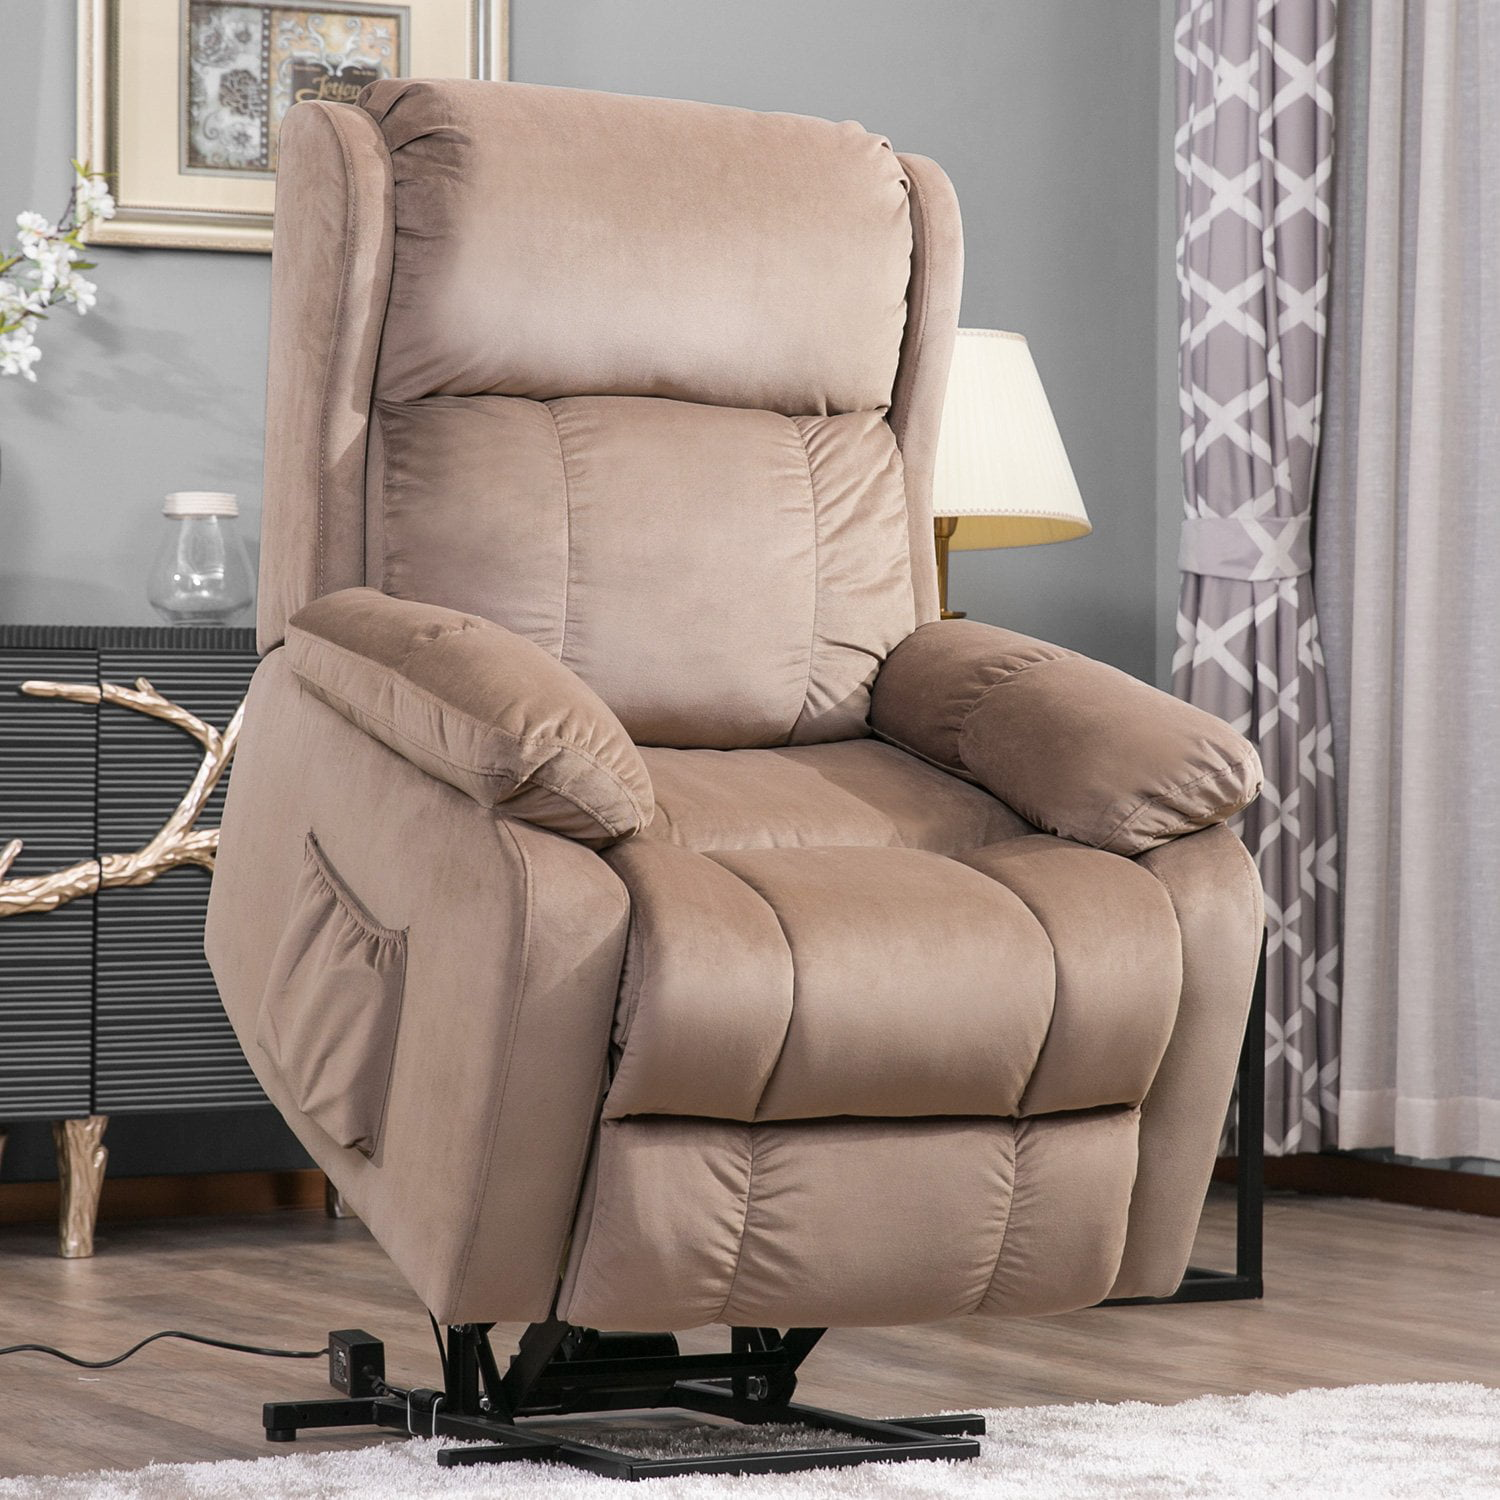 Lift Chairs for Elderly, Upholstered Fabric Power Lift Recliner Chair with Remote Control, Heavy Duty Electric Lift Chair Recliners Sofa Lounge Chair